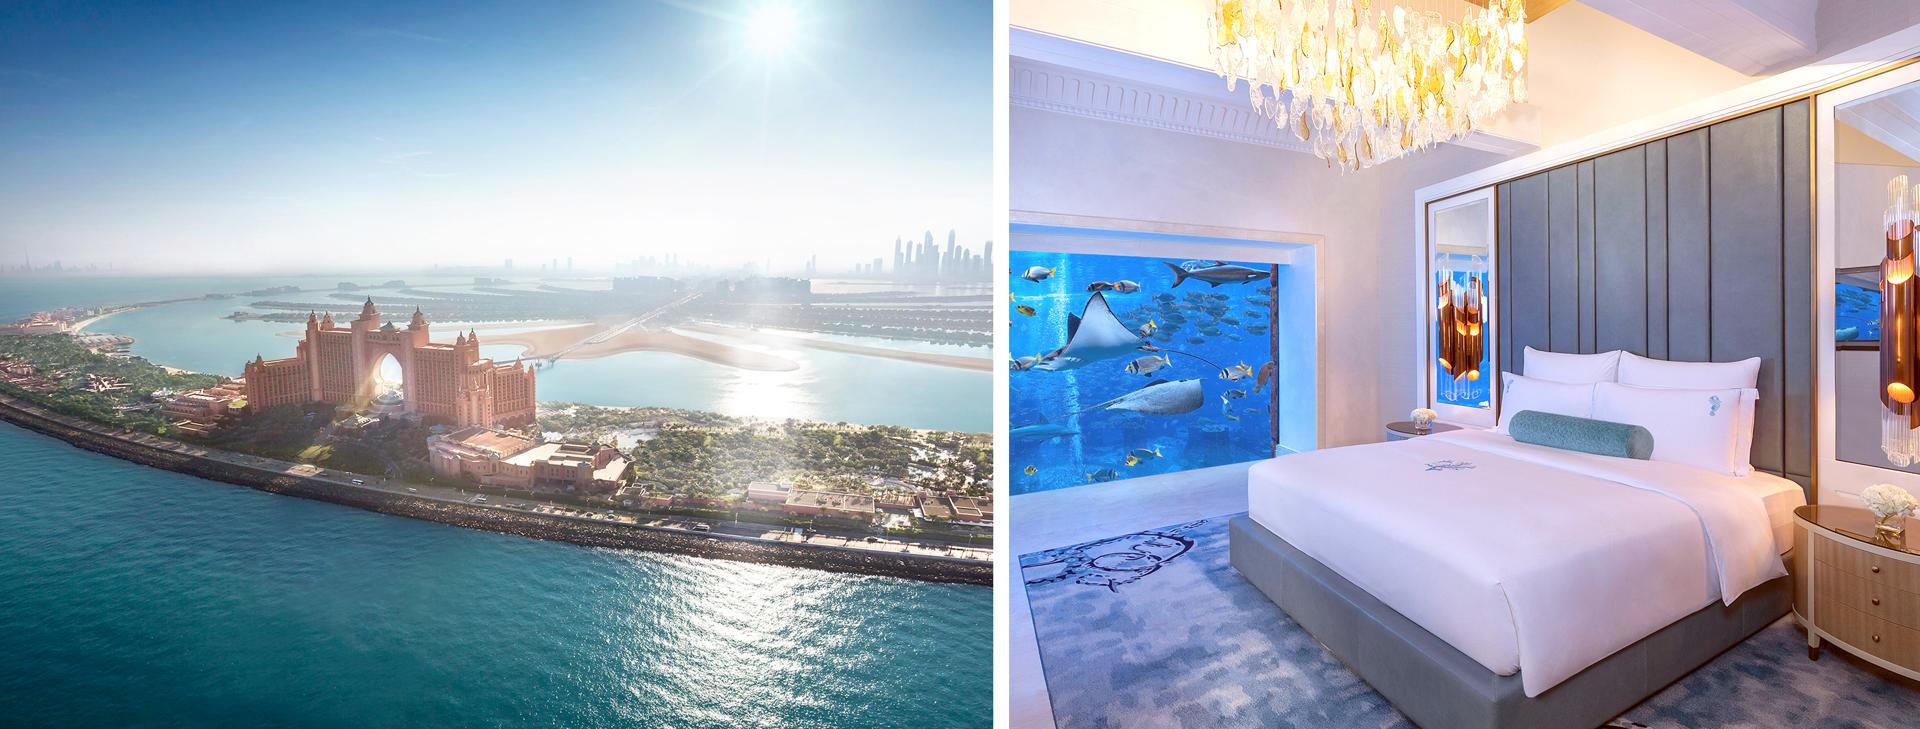 AtlantisThePalm-combined-Aerial-Credit